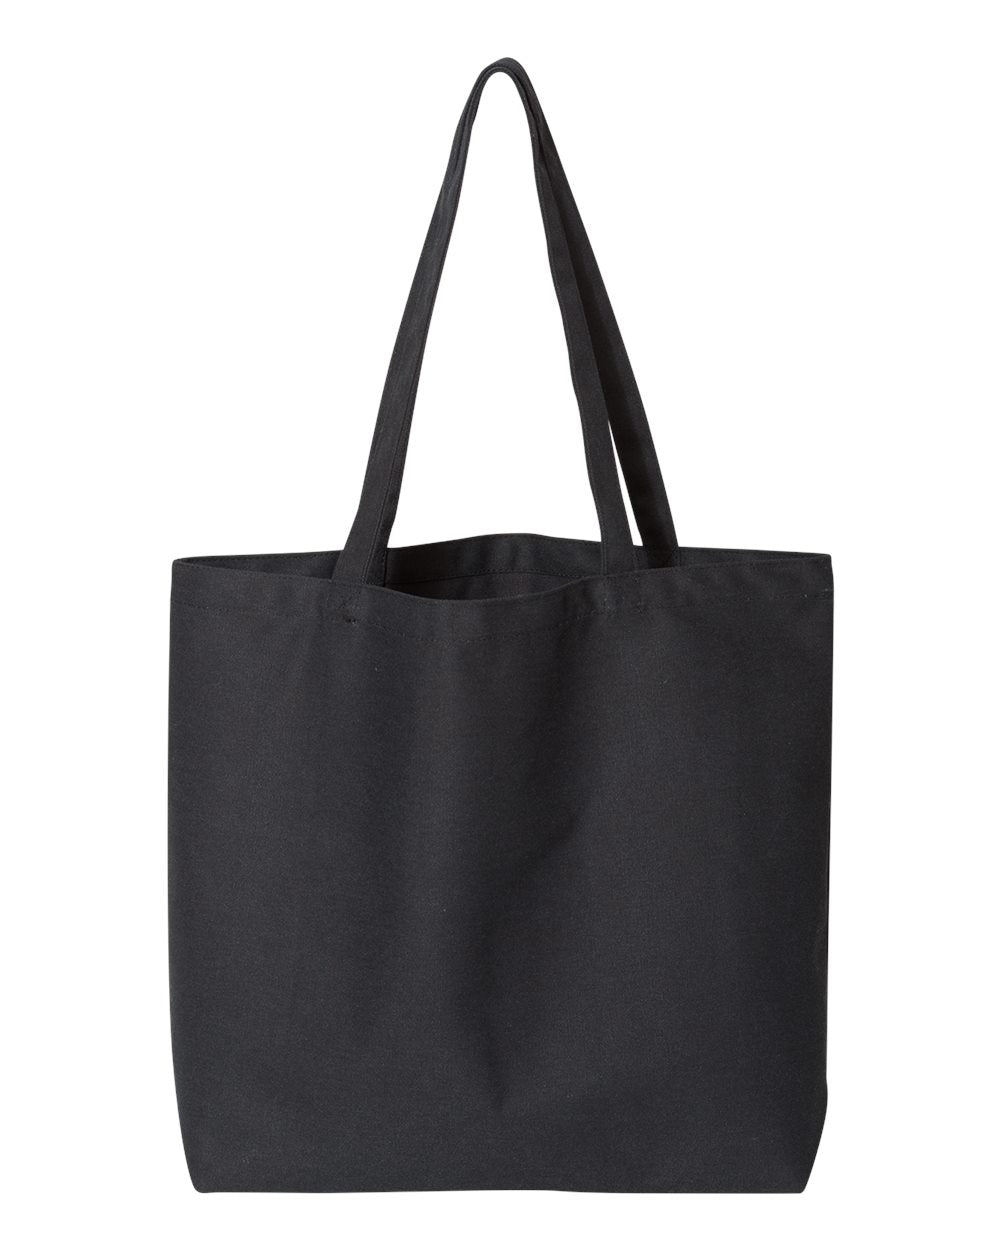 Screen Printed Large Canvas Tote - Choose a Print